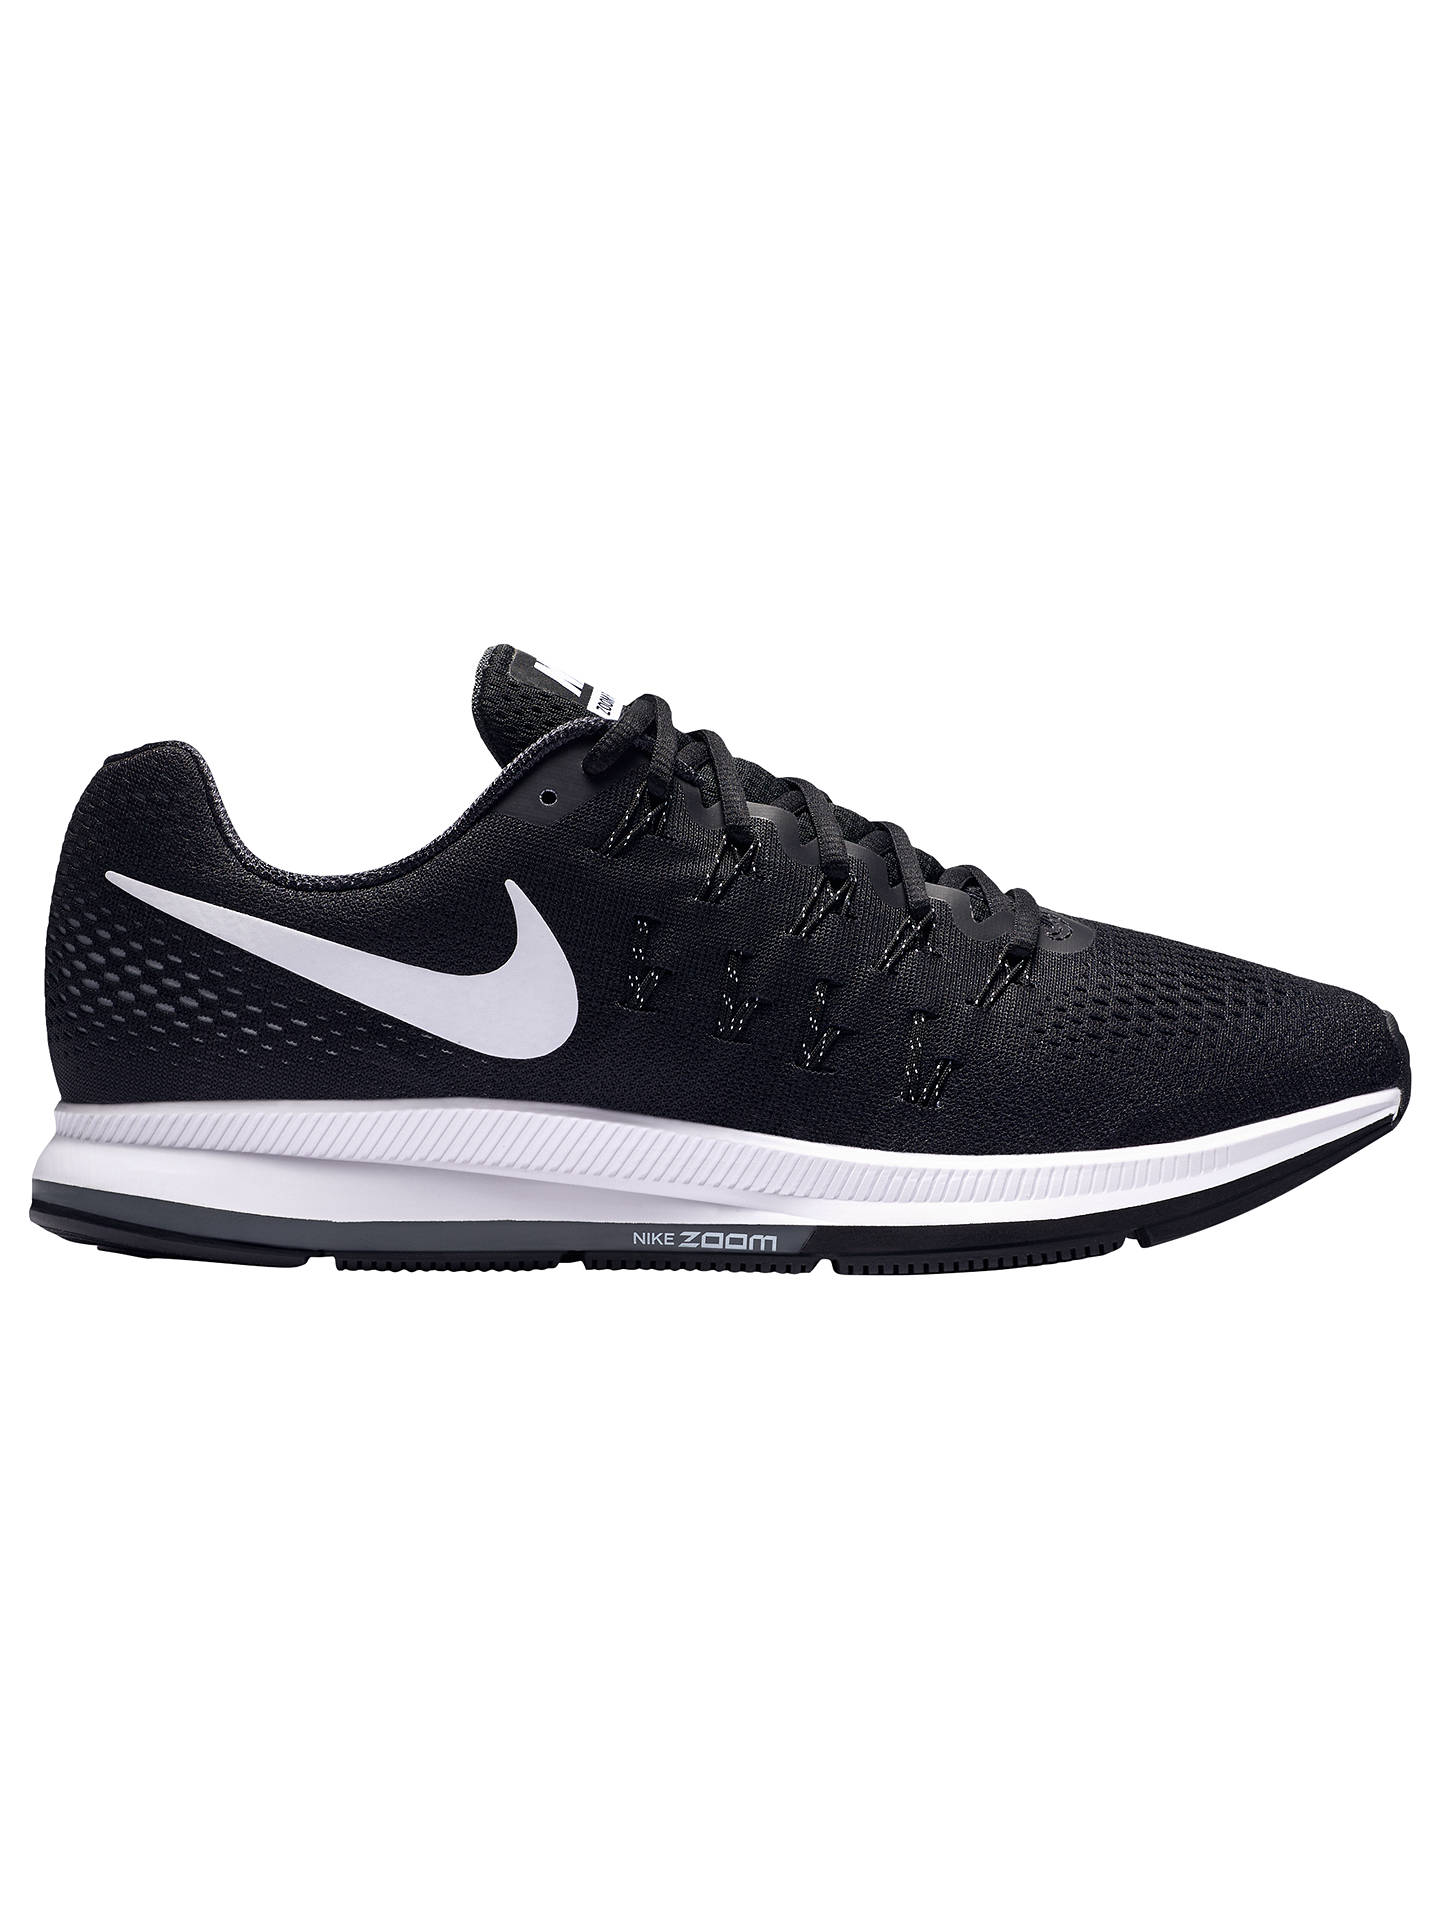 low priced d203a 93254 Buy Nike Air Zoom Pegasus 33 Men s Running Shoes, Black White, 7 Online ...